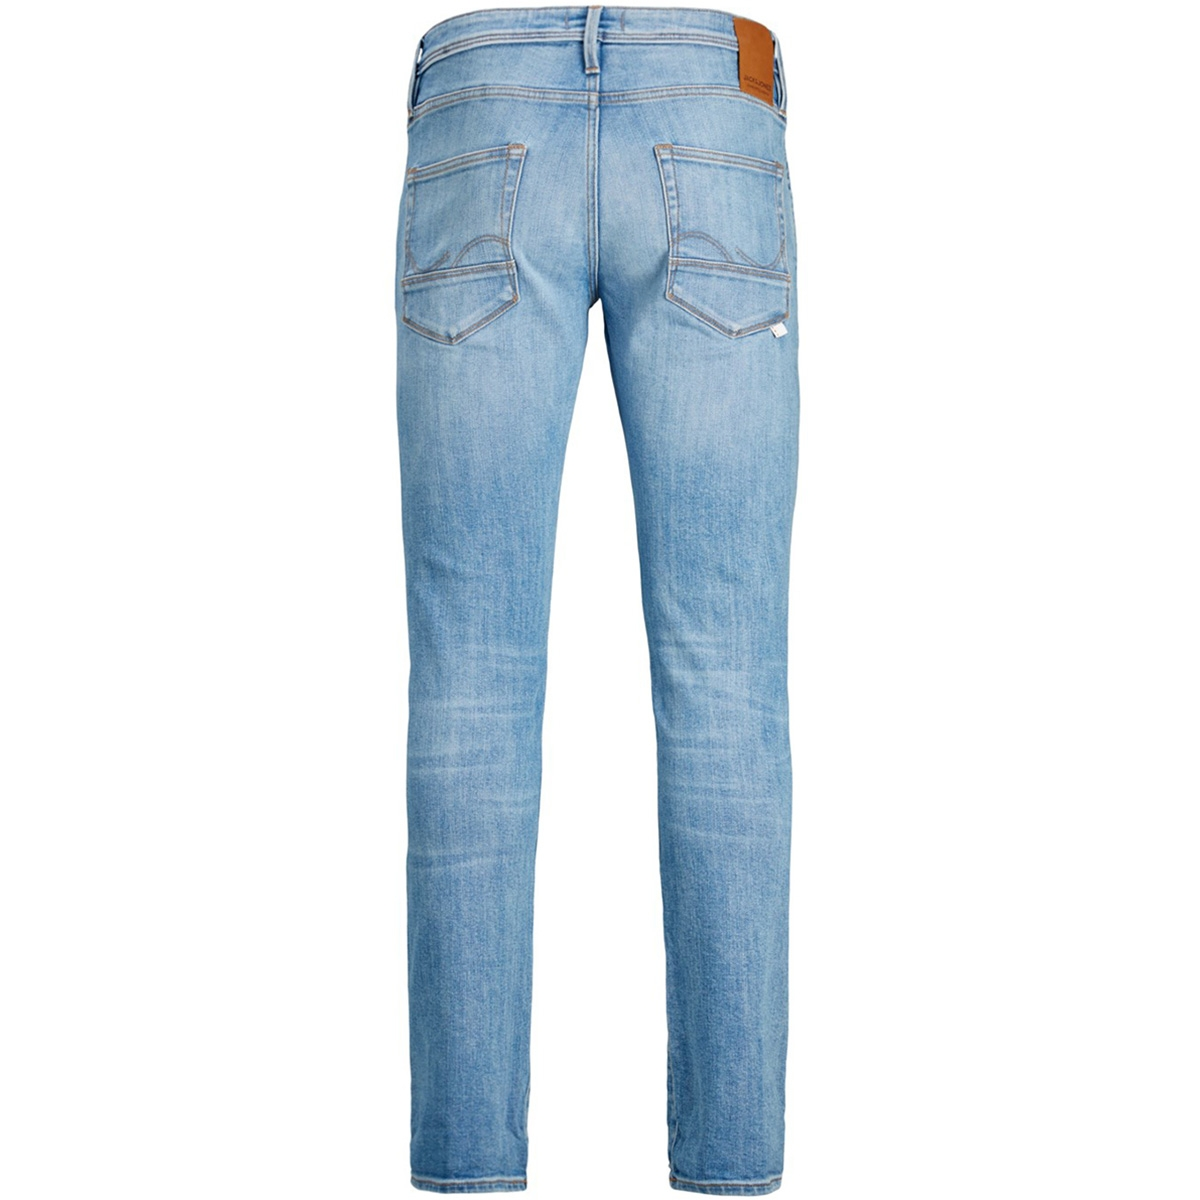 jjiglenn jjfox am 967 50sps noos 12168497 jack & jones jeans blue denim